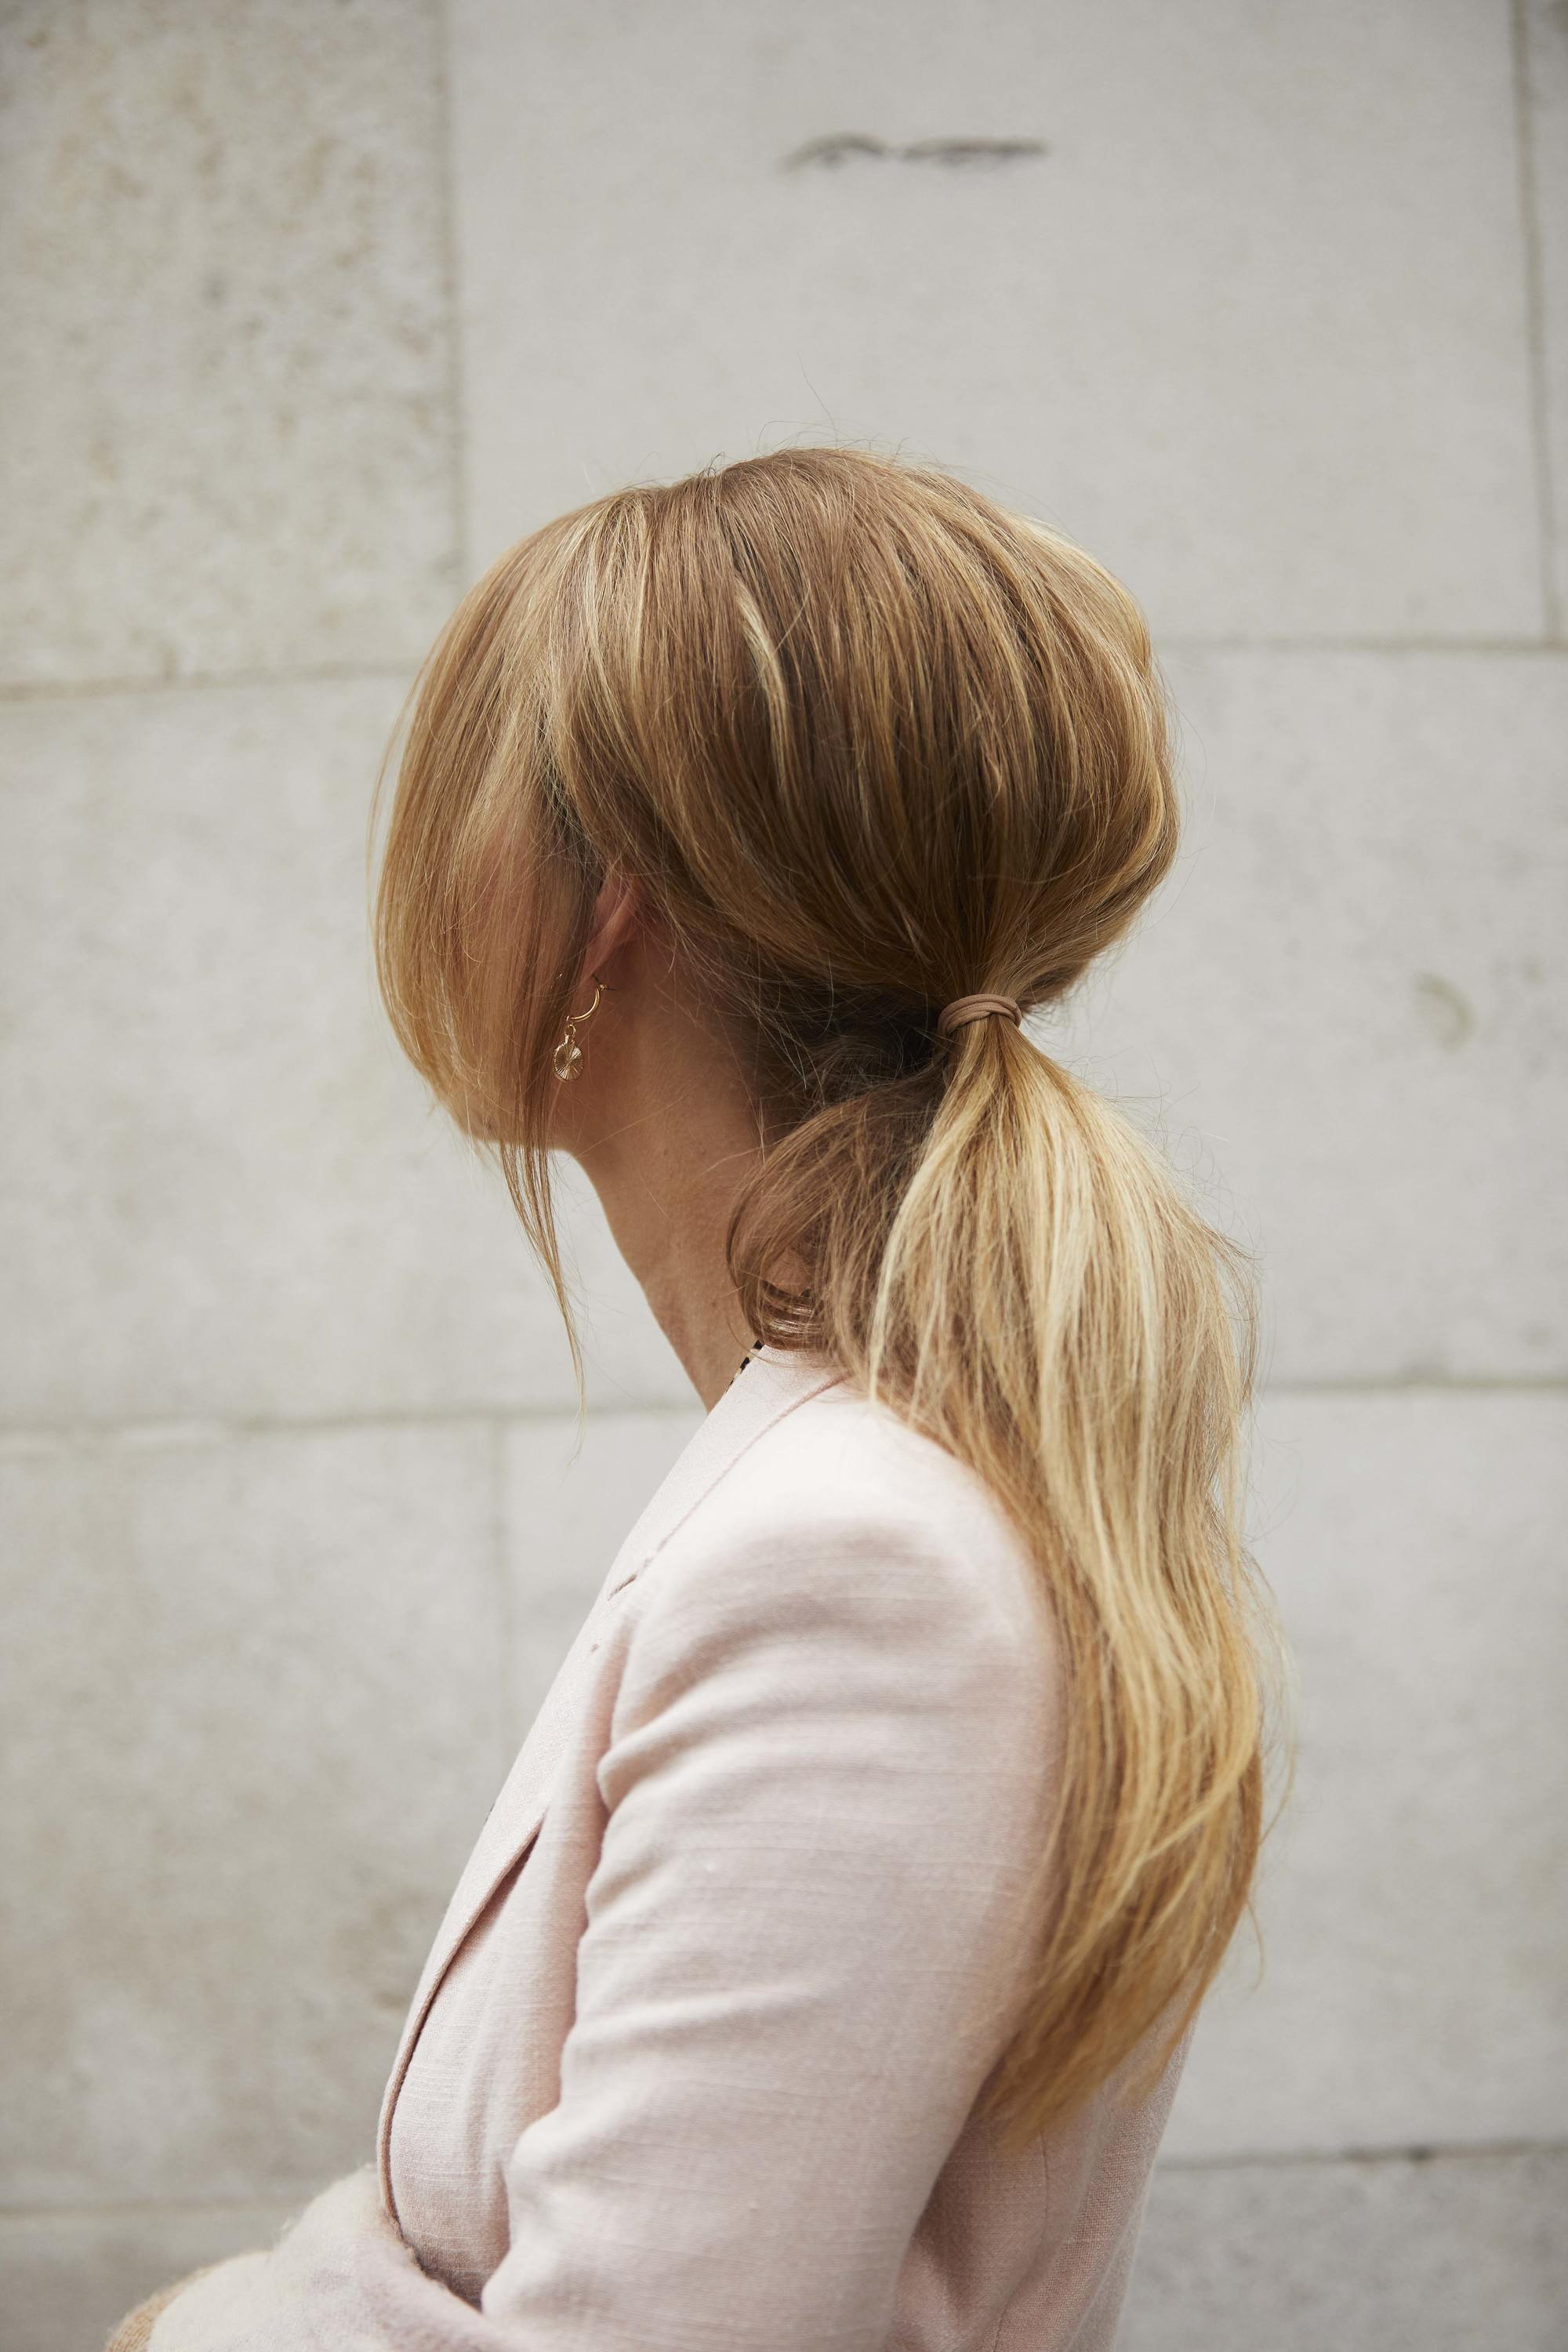 Wedding hairstyles: Woman with long blonde golden hair styled into a bouffant ponytail, wearing a pink suit jacket and posing outside